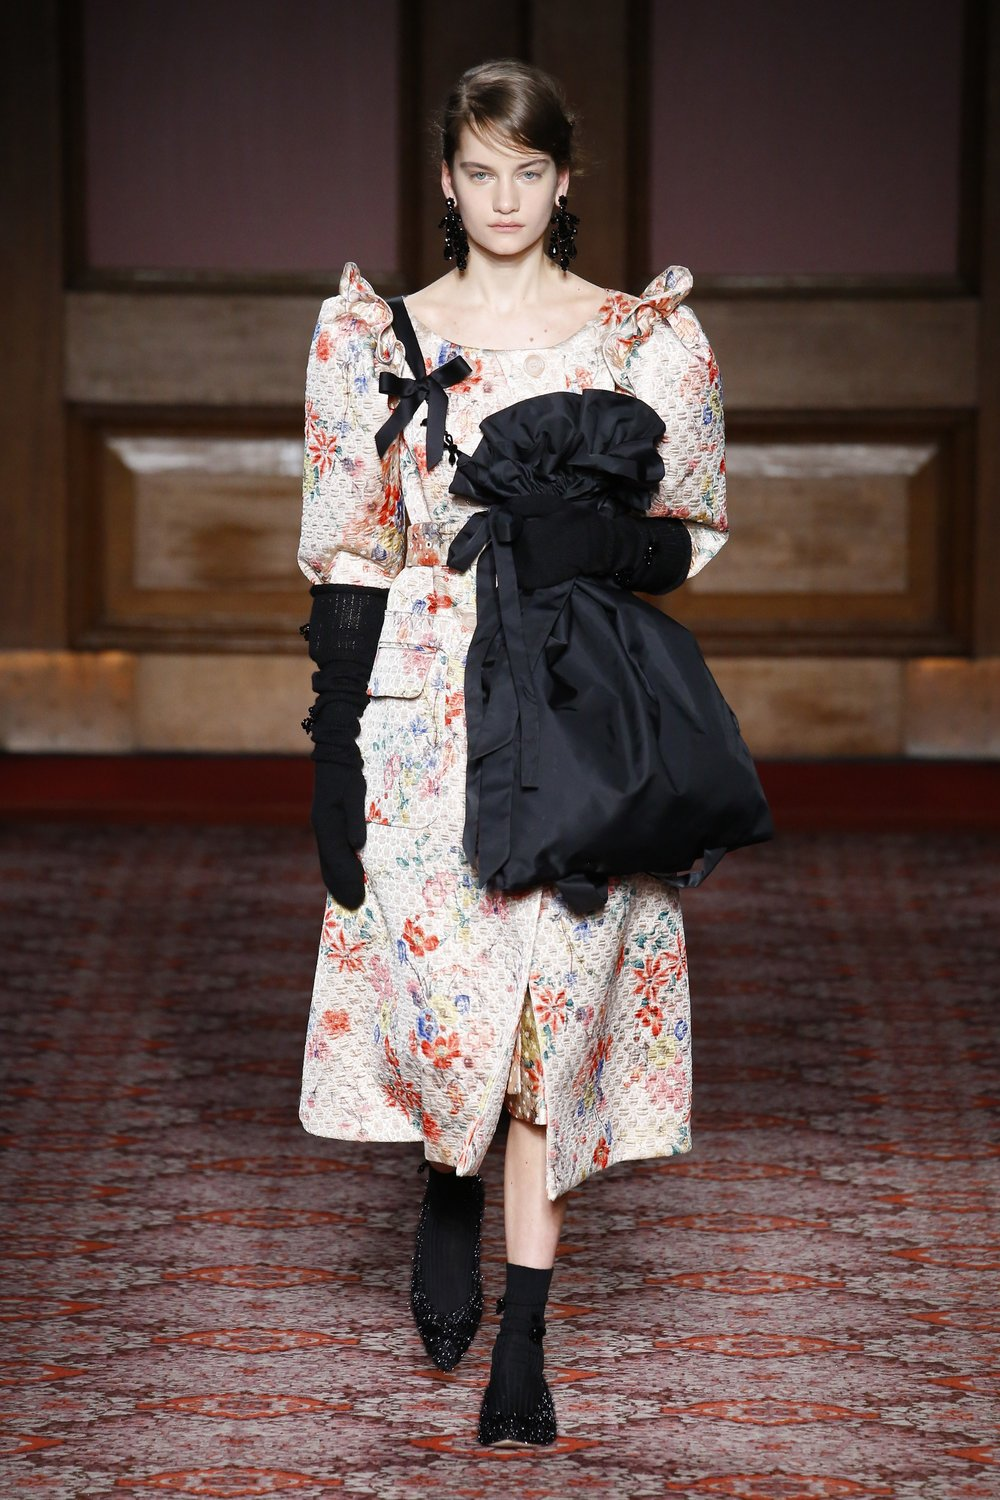 simone-rocha-london-fashion-week-fall-2018-rtw-6.jpg